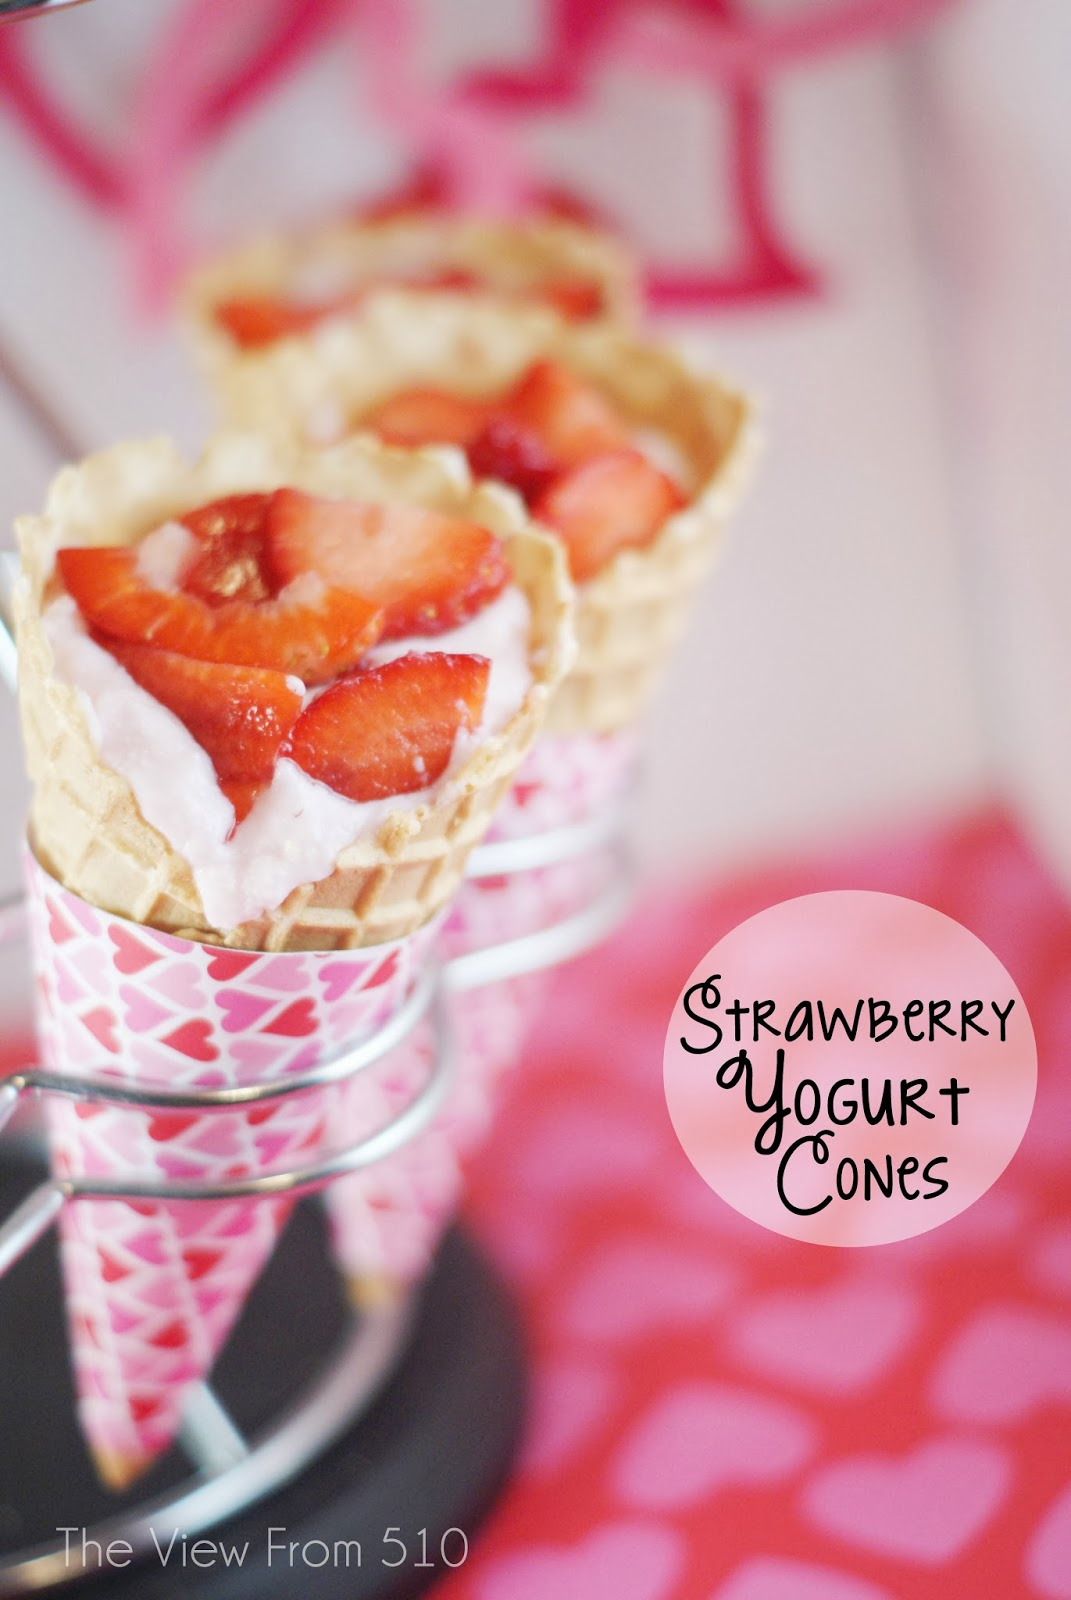 Strawberry Yogurt Cones #recipe #sponsored